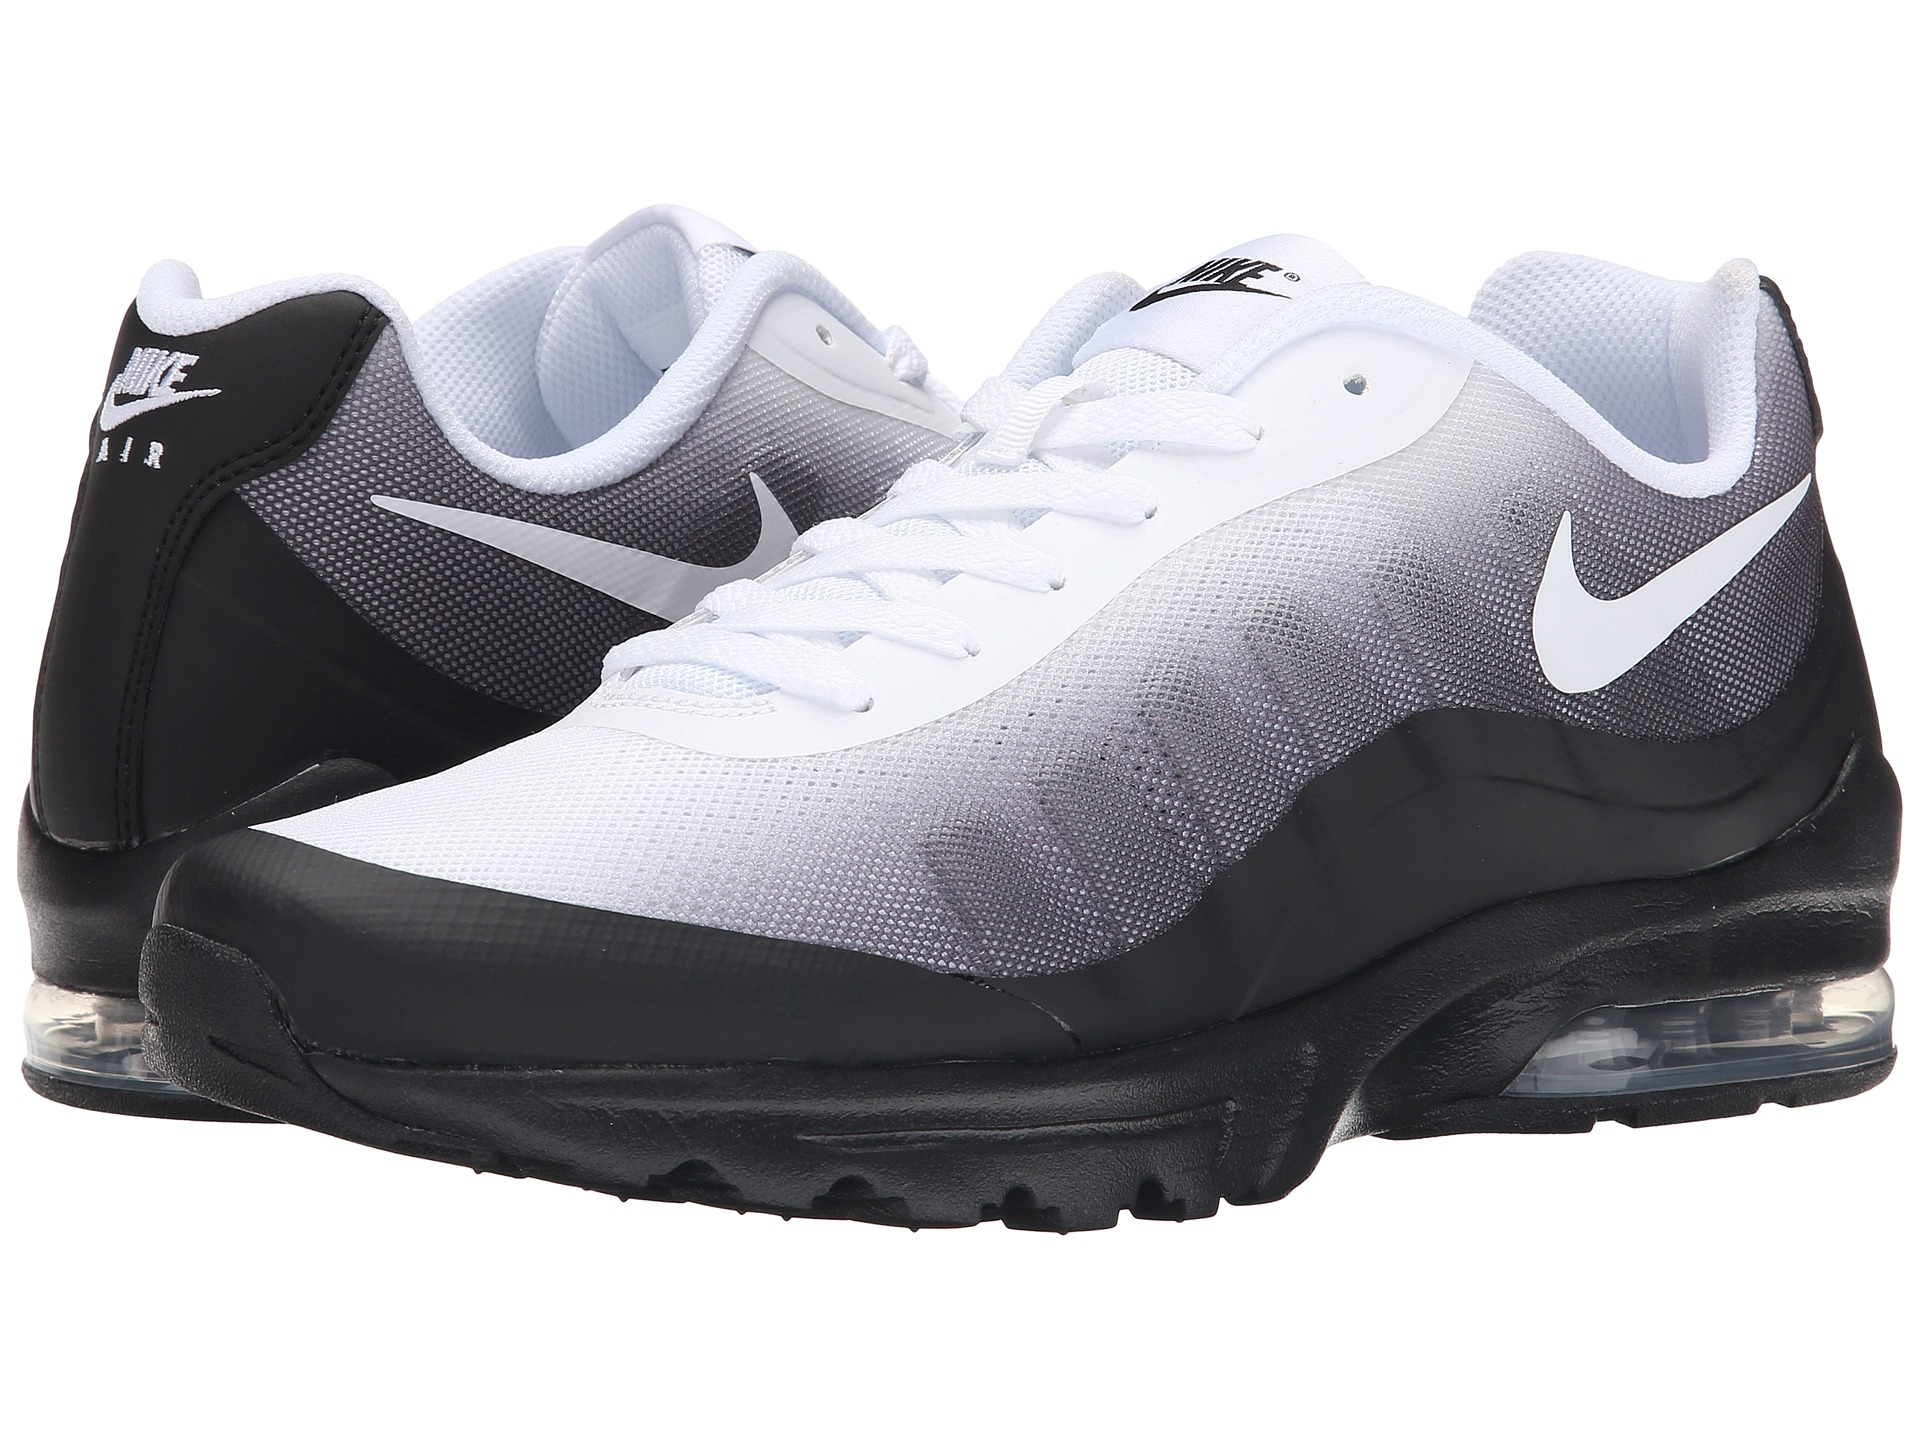 nike air max invigor black cool grey white free shipping both ways. Black Bedroom Furniture Sets. Home Design Ideas